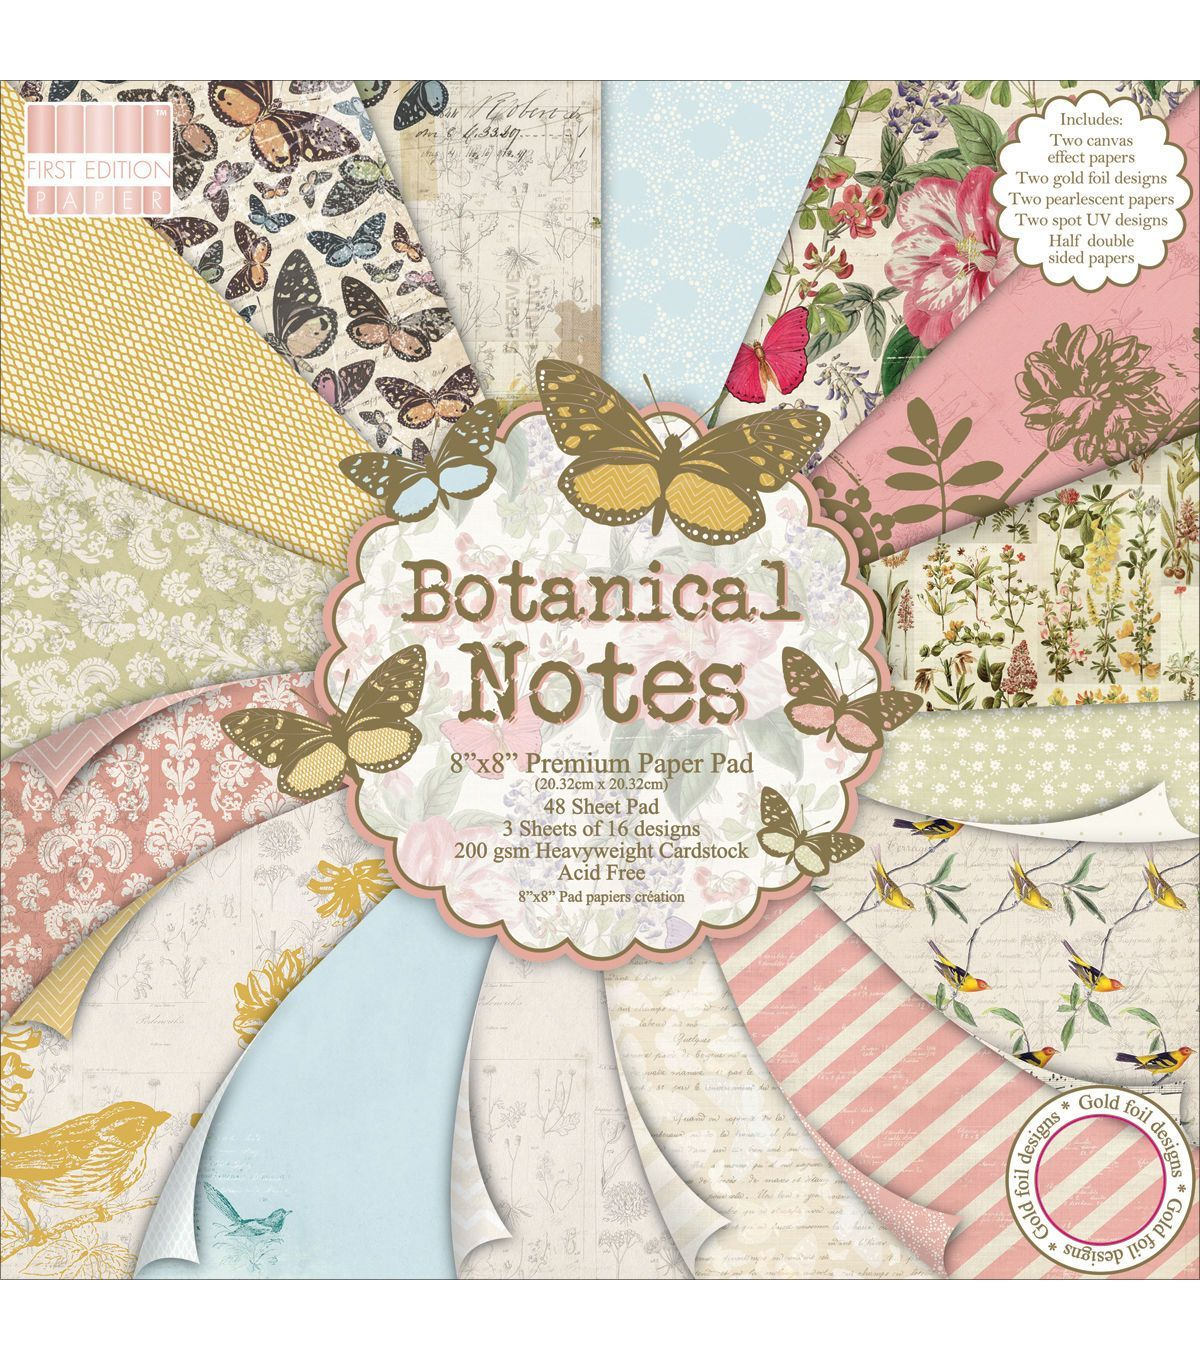 First Edition Botanical Notes 6x 6 Papers Sample 16 x 6x6 designer Paper Packs